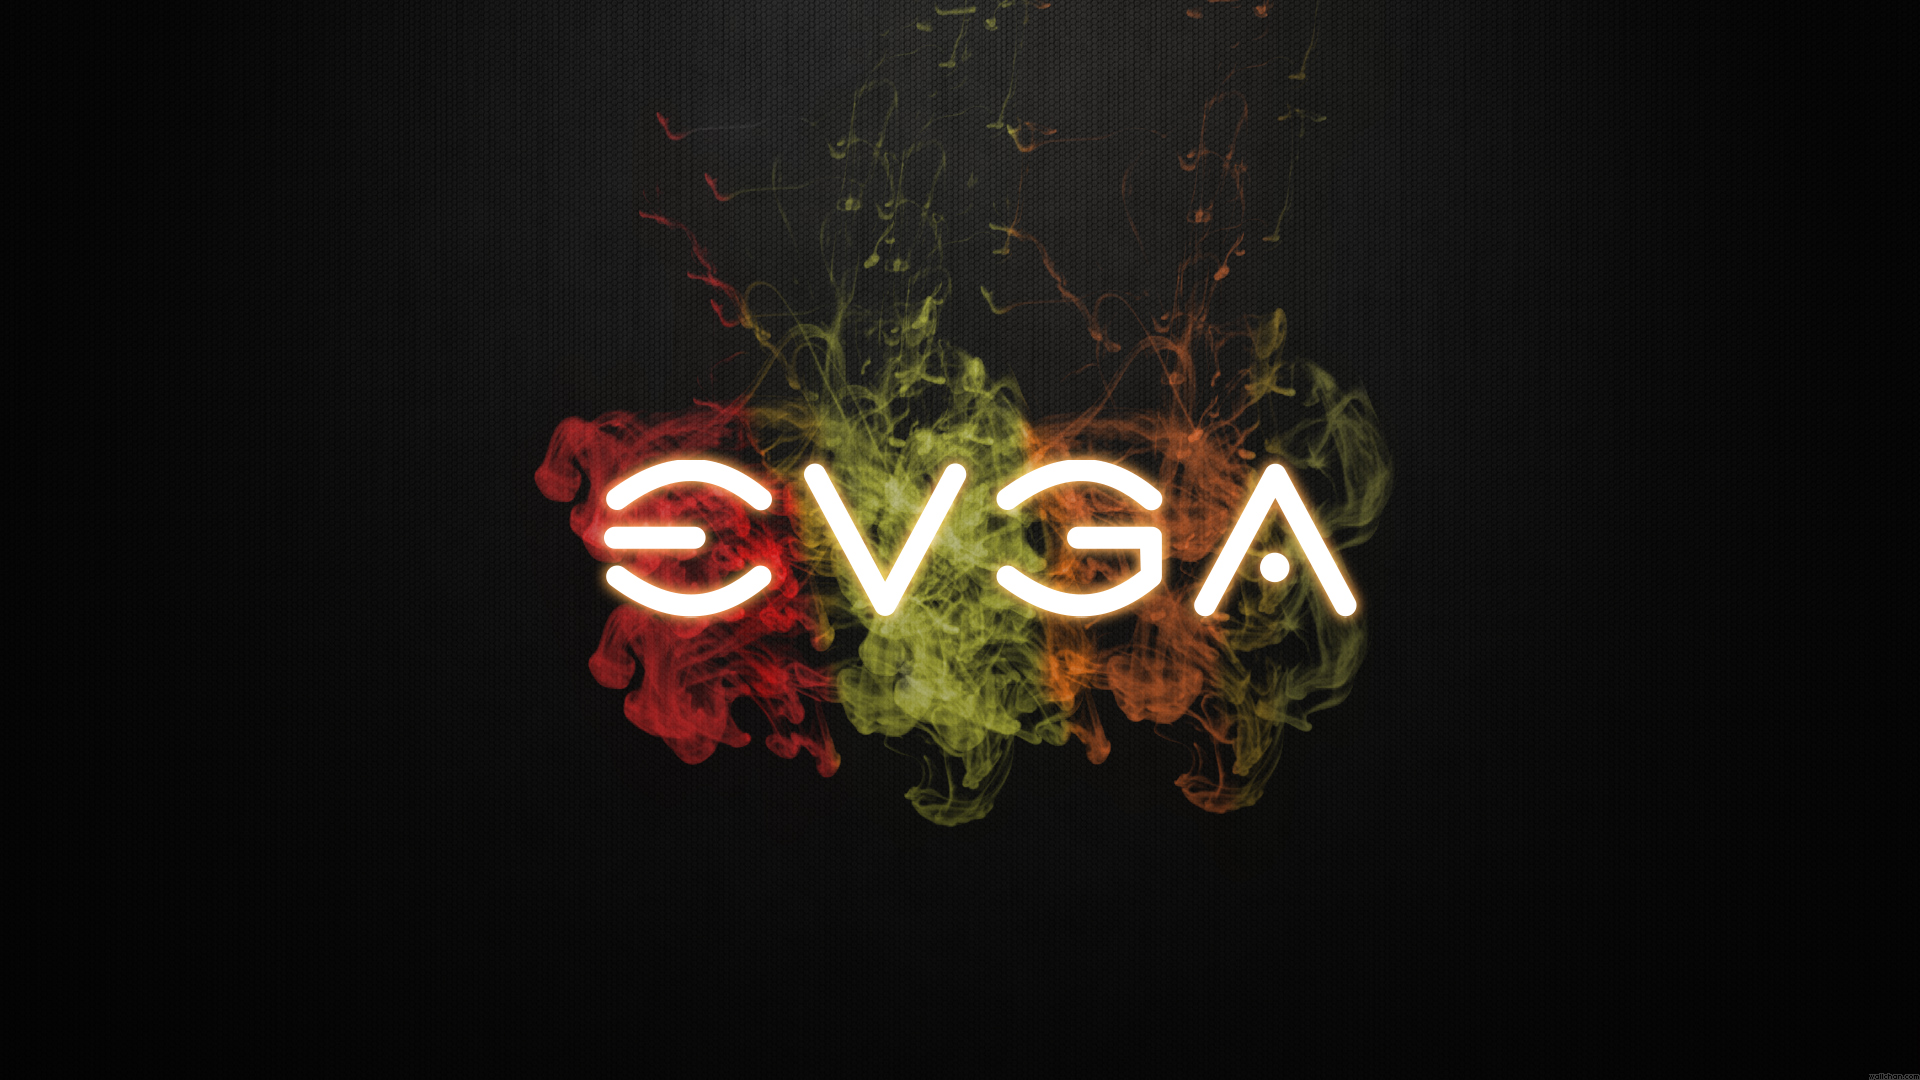 Images of EVGA | 1920x1080